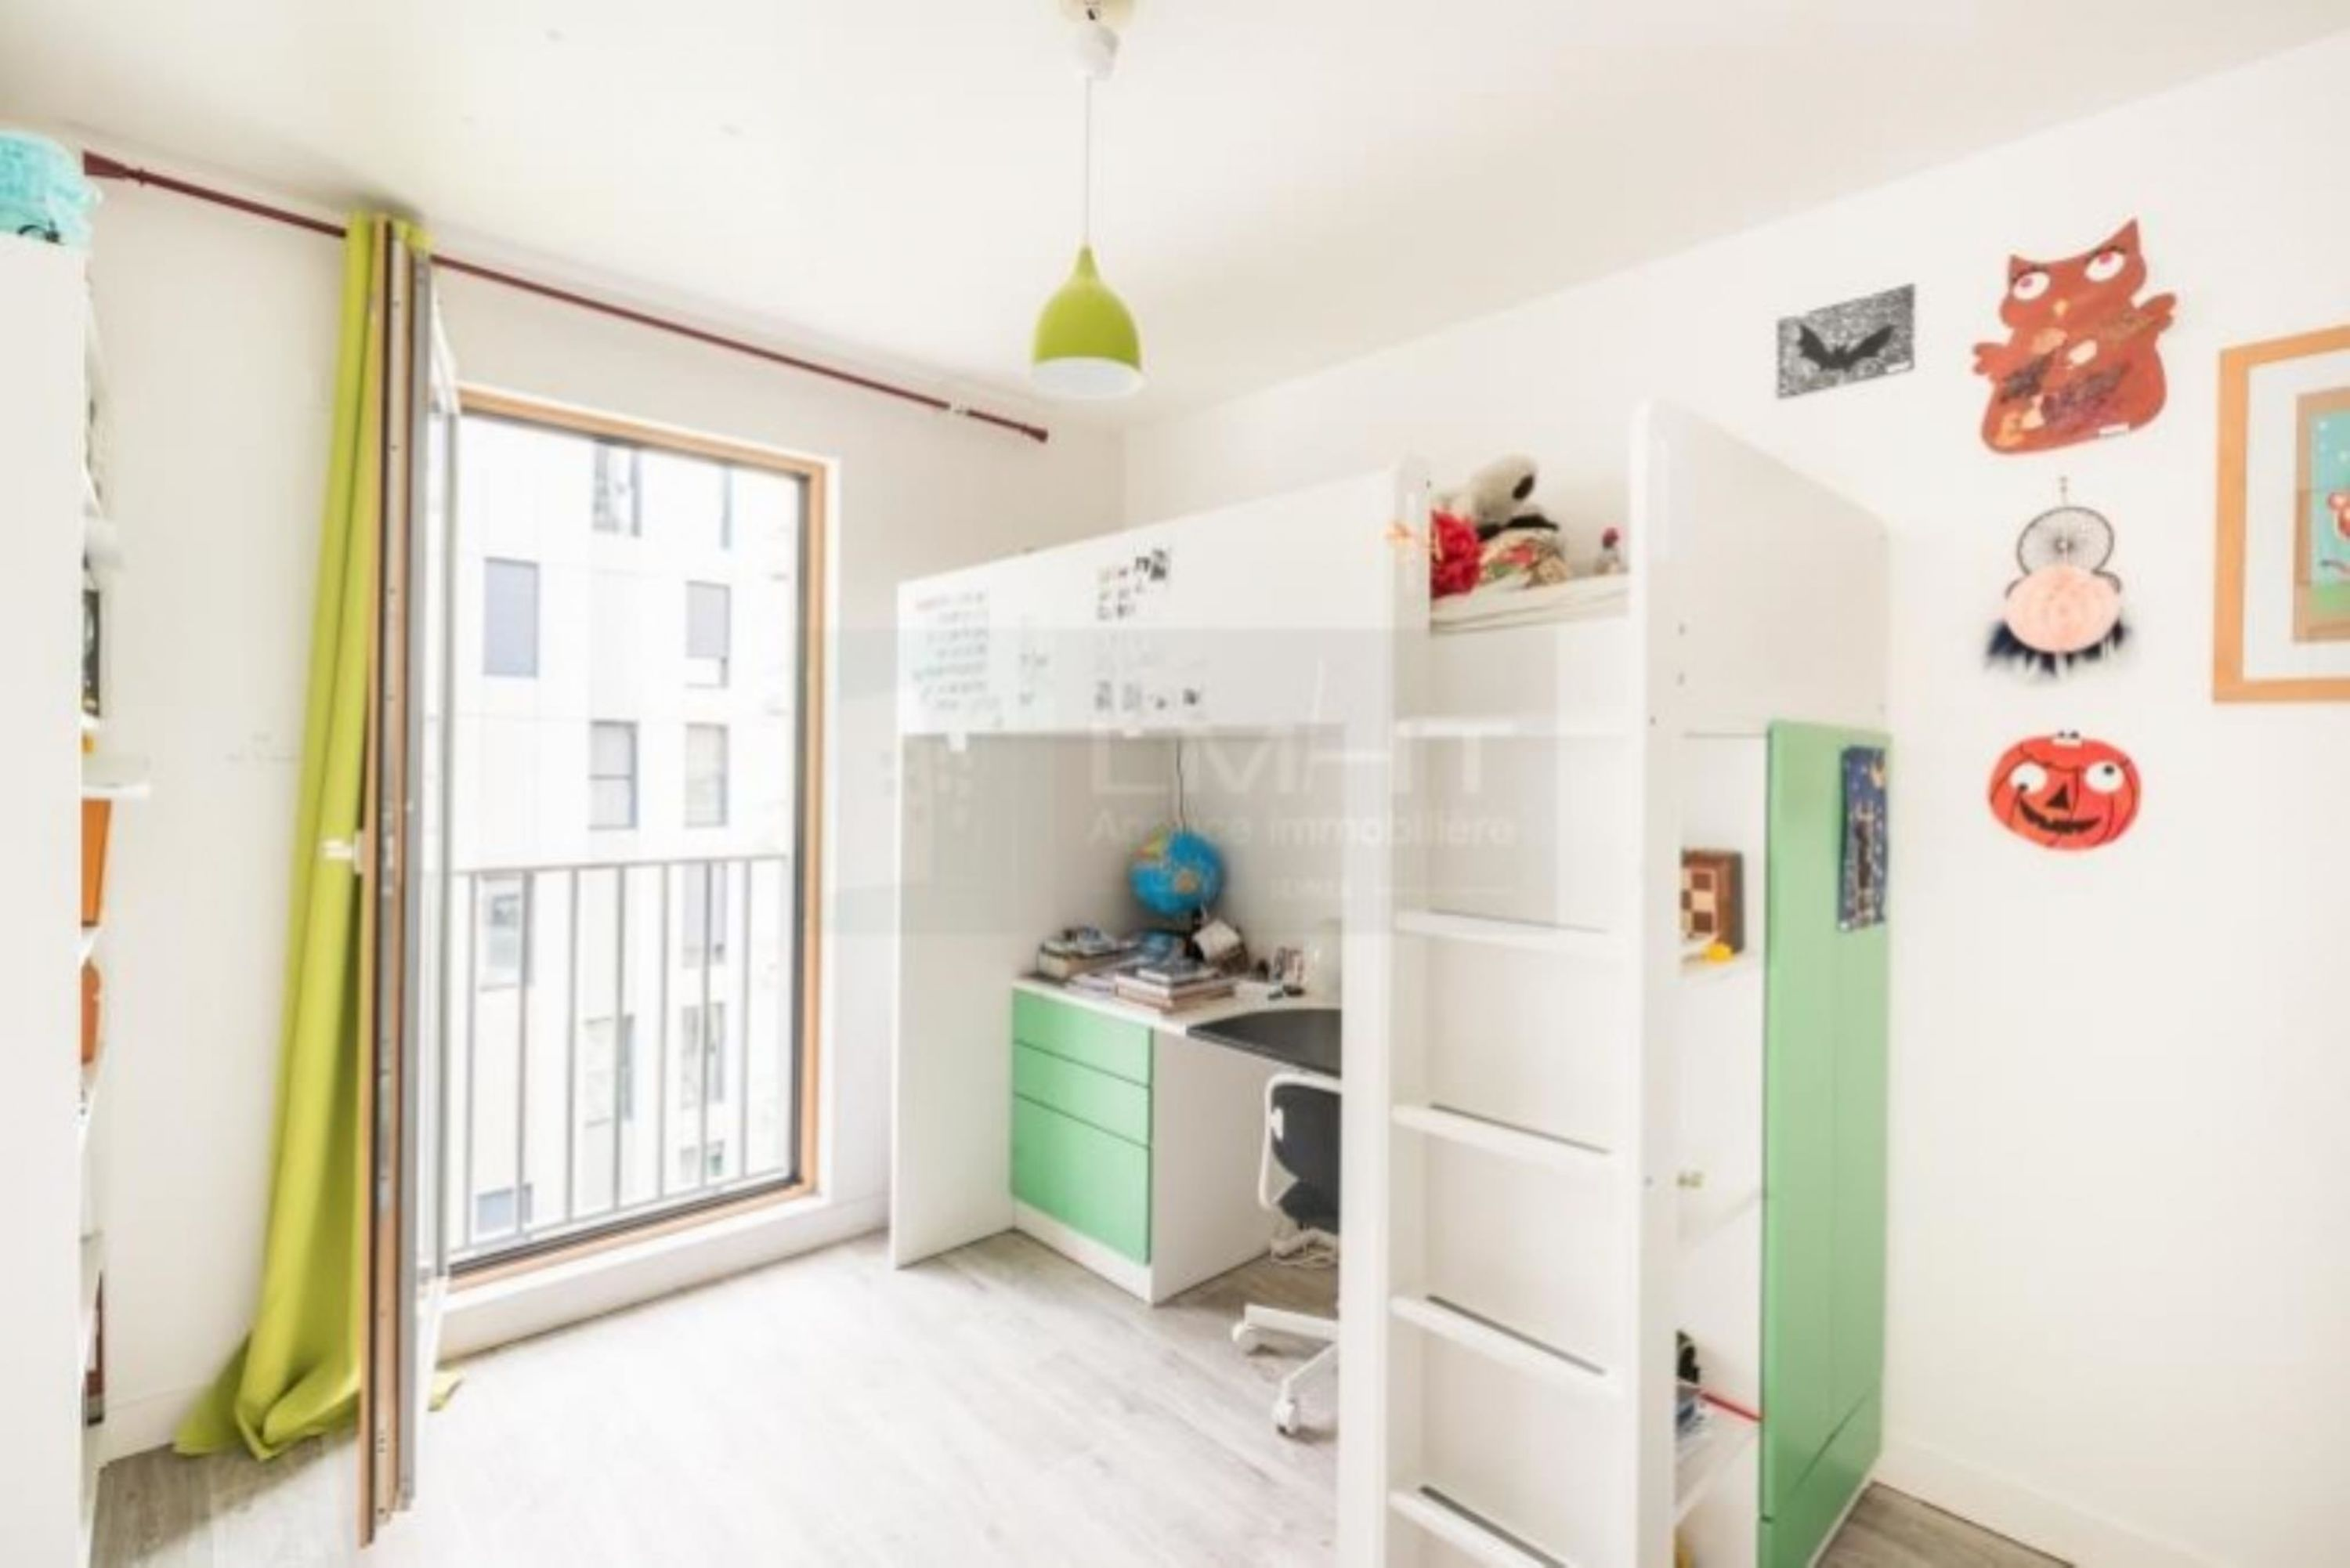 agence immobilière sevres 92 le chesnay 78 achat vente location appartement maison immobilier LMHT ANF ORKCLFAF